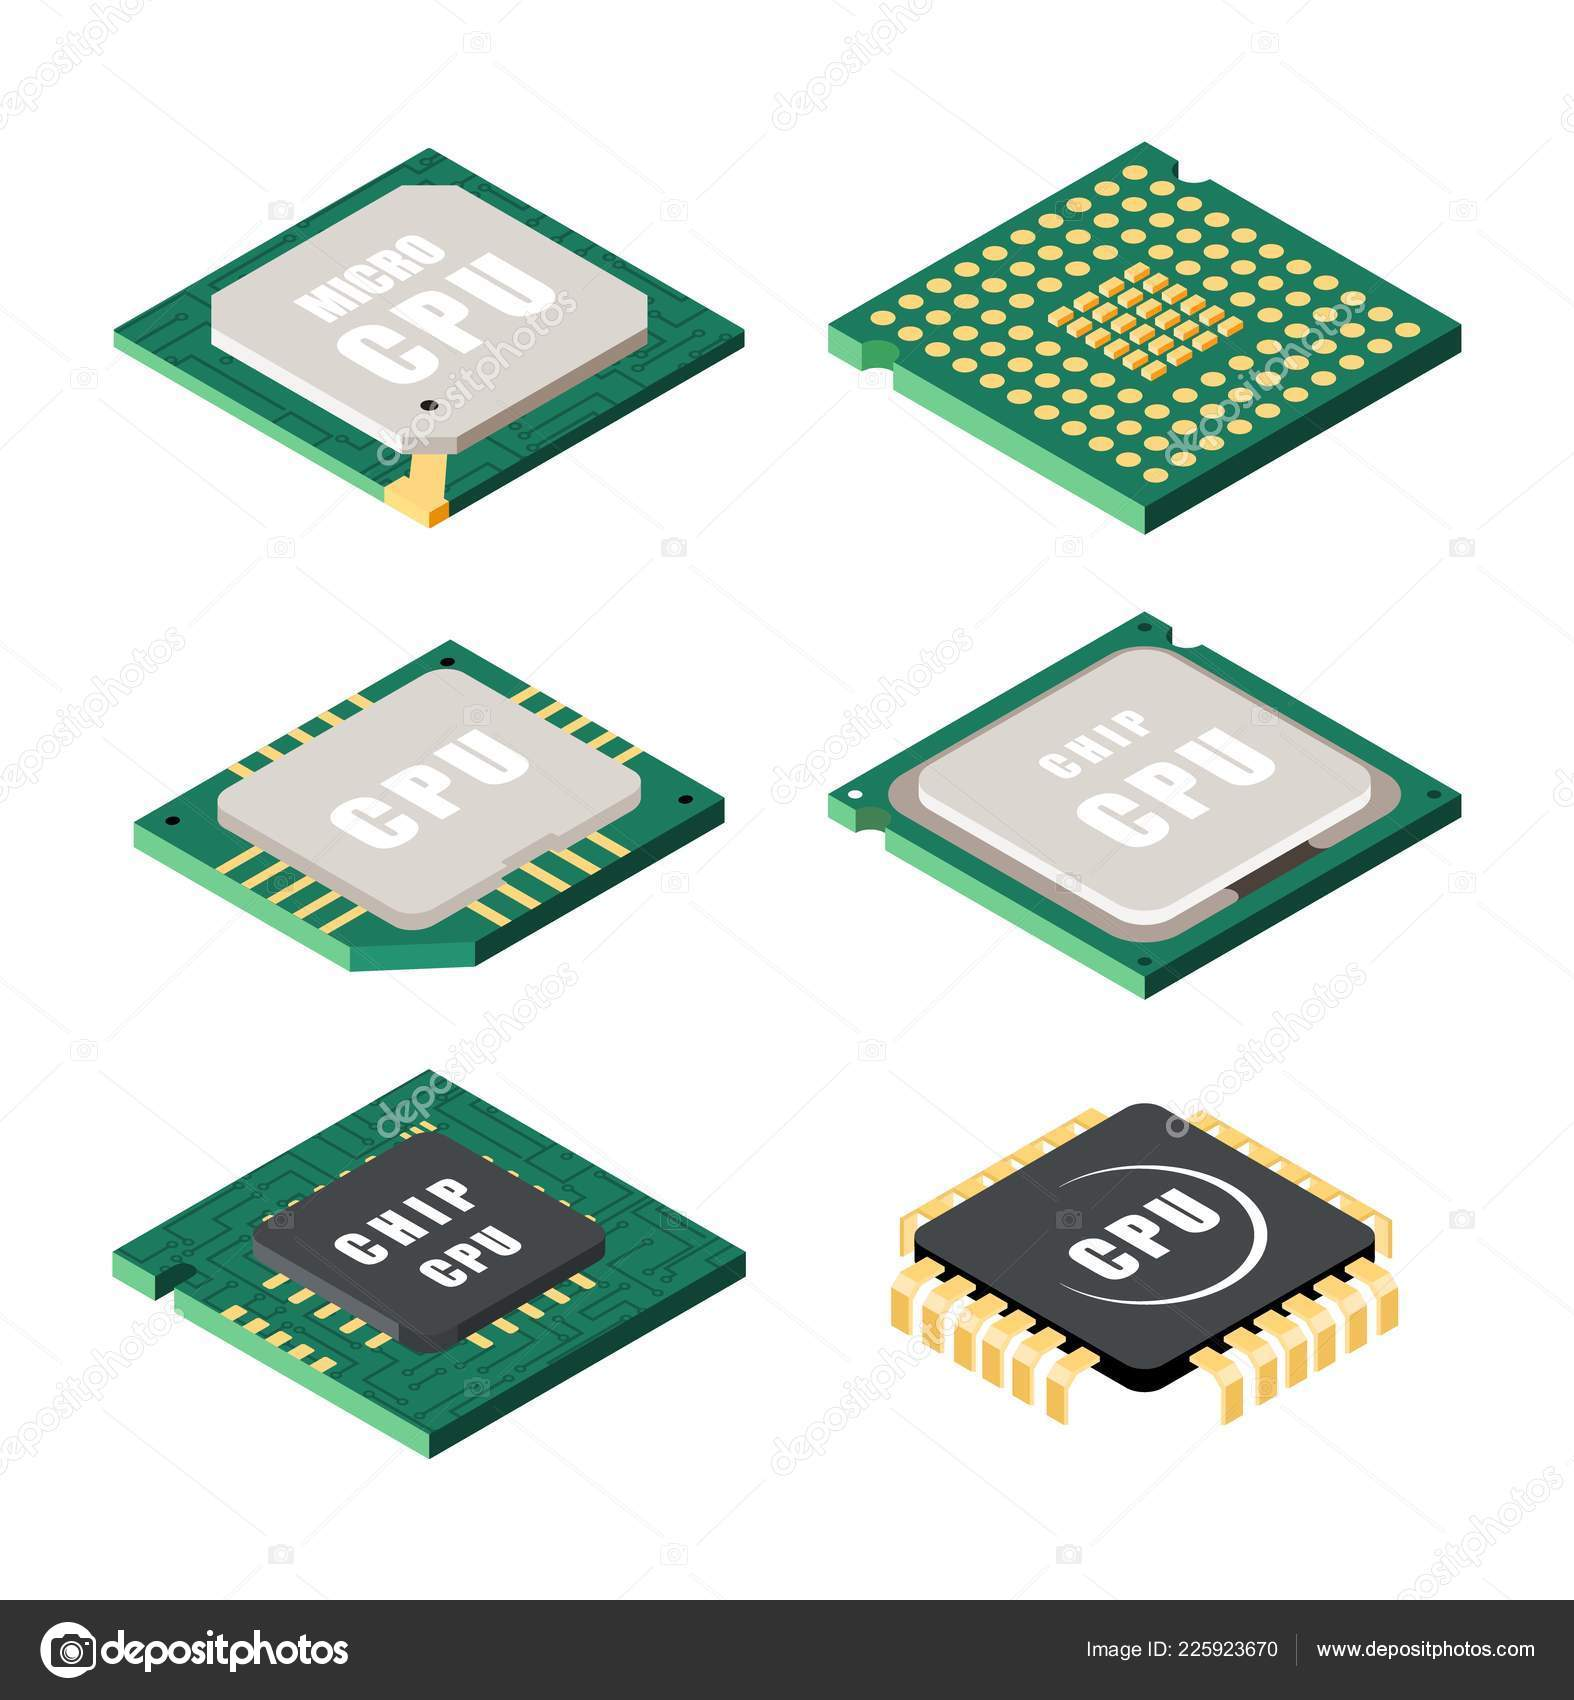 various cpu vector graphics stock vectors royalty free various cpu vector graphics illustrations depositphotos depositphotos